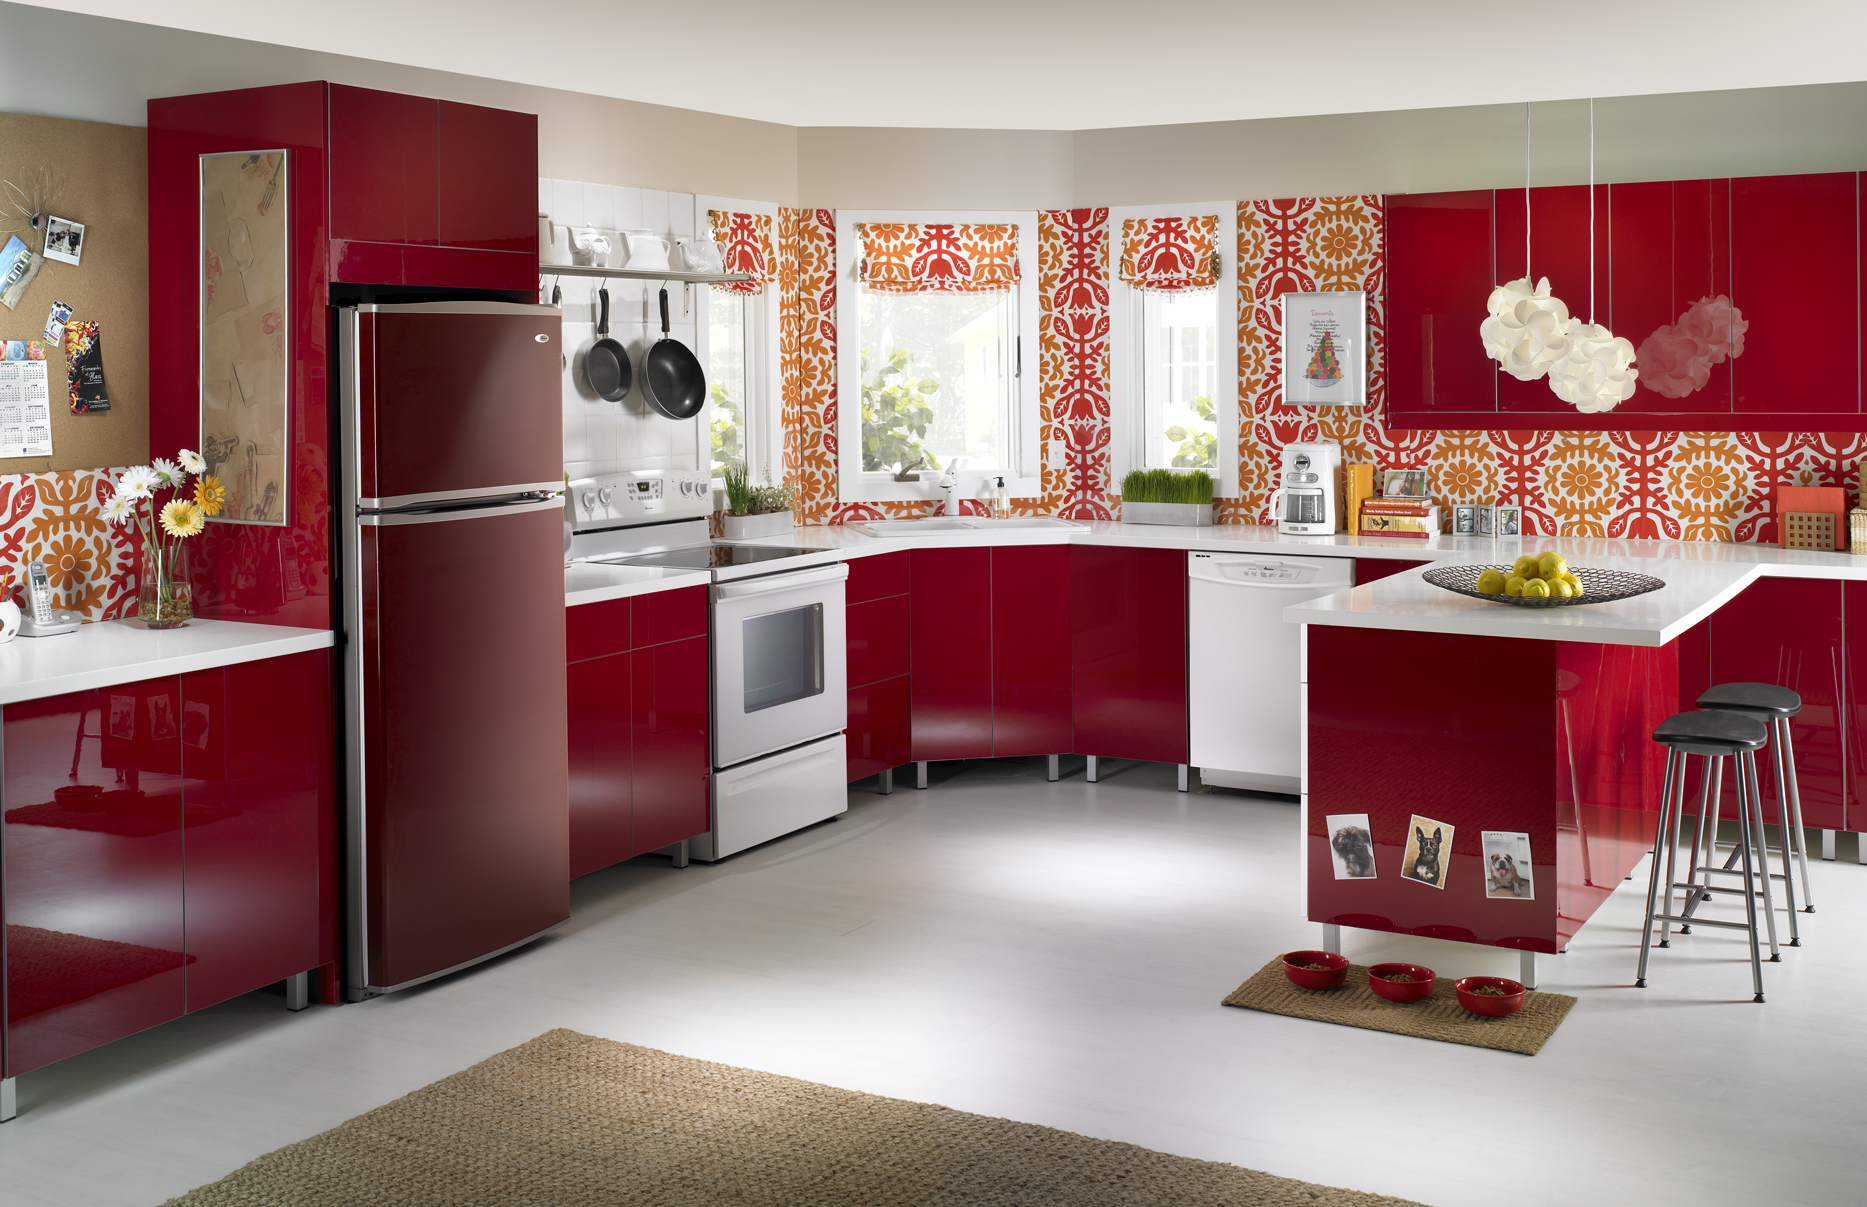 Refrigerator Buying Guide How To Buy A Refrigerator